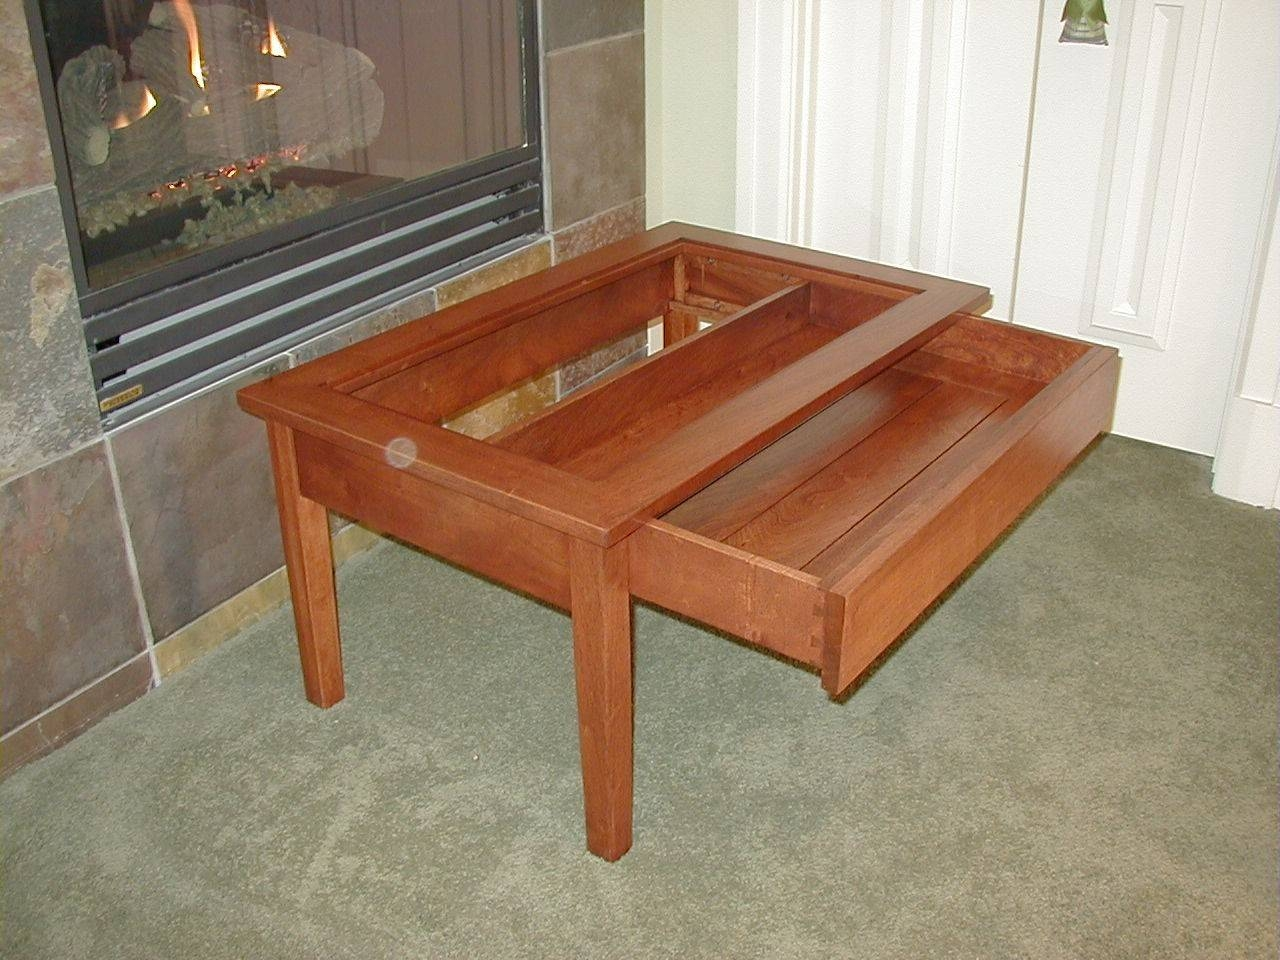 Furniture. Display Case Coffee Table Ideas: Brown Square Antique with Glass Top Display Coffee Tables With Drawers (Image 20 of 30)